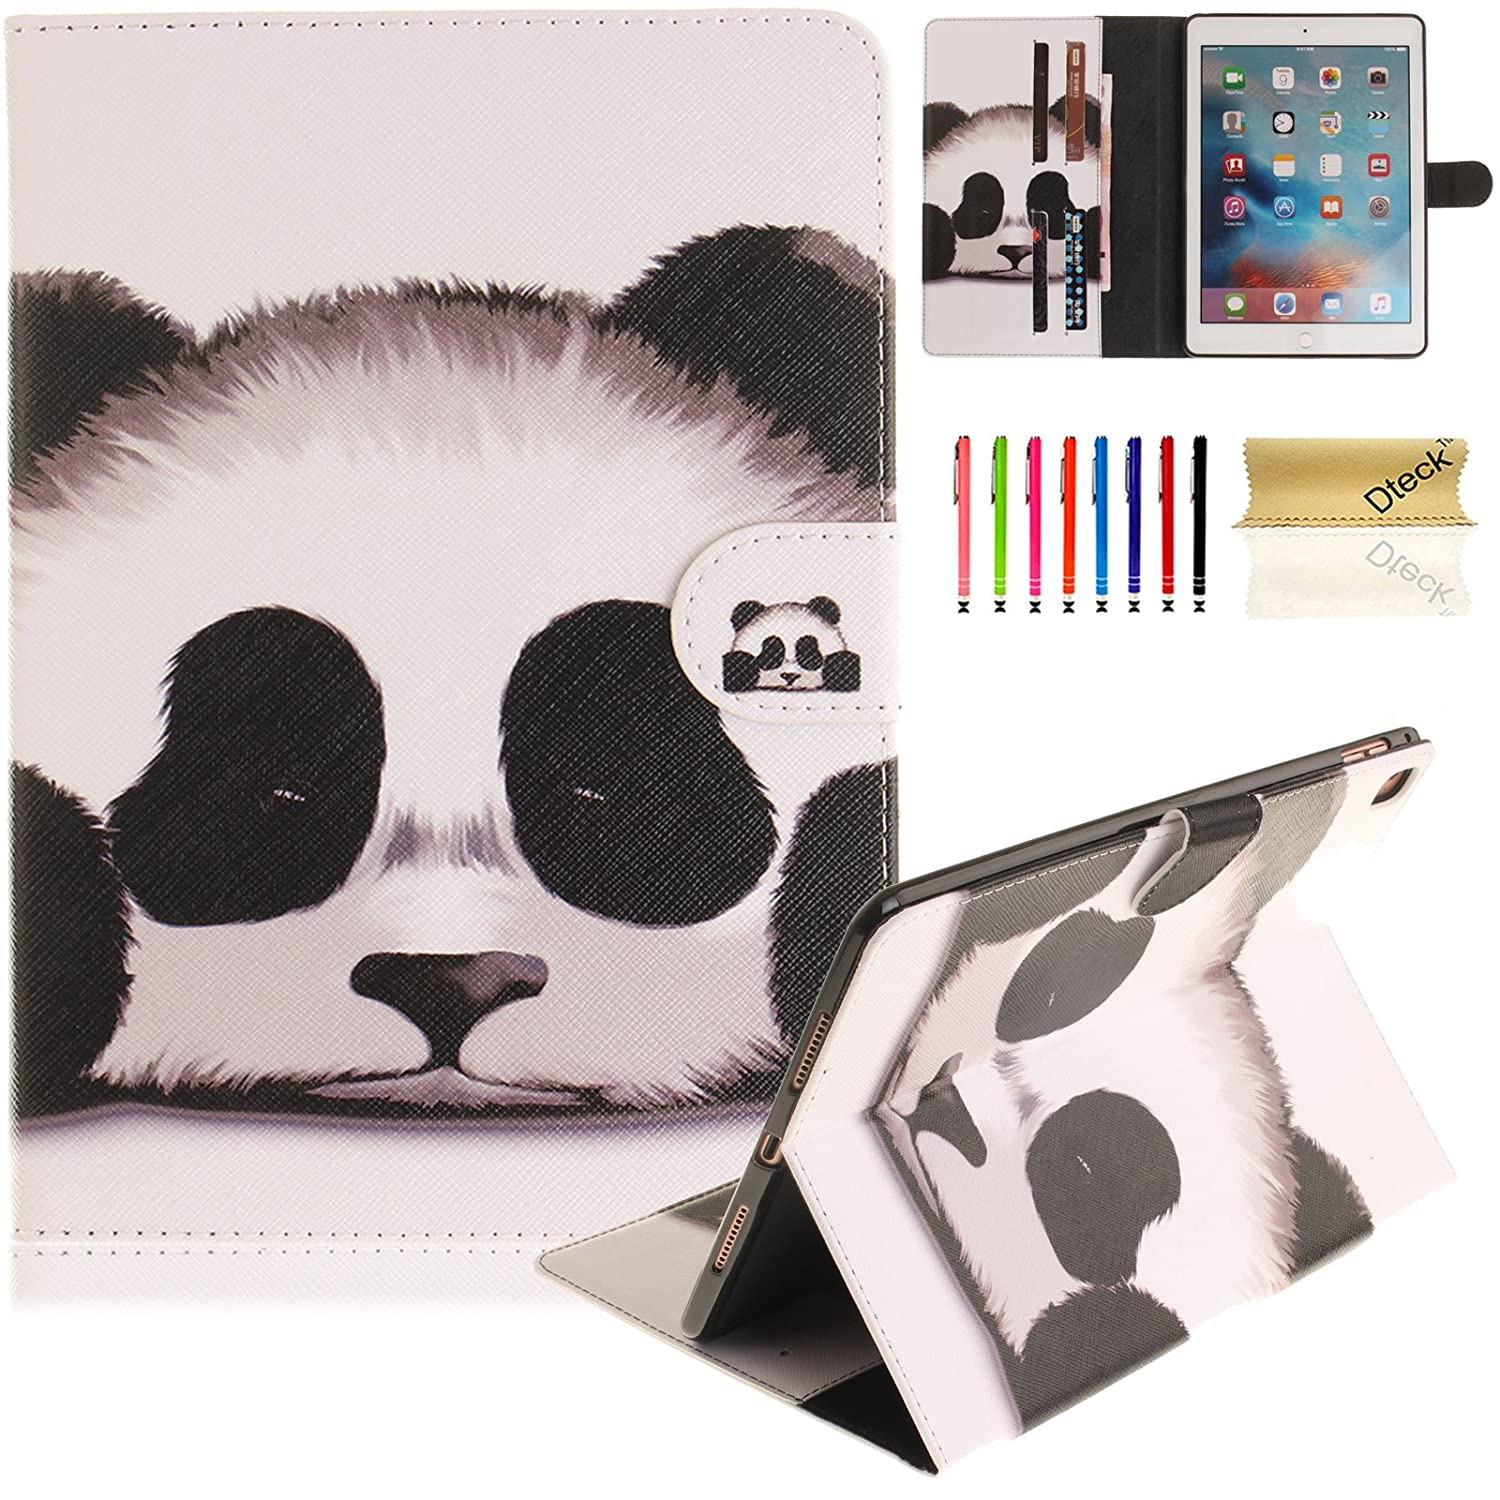 iPad Pro 9.7 2016 Case, A1673 /A1674 /A1675 Case, Dteck Cute Cartoon Flip Smart Stand Case with [Stylus Pencil] PU Leather Magnetic Wallet Cover for Apple iPad Pro 9.7 Inch(Beach Sand) iPadPro9.7-DK-0822